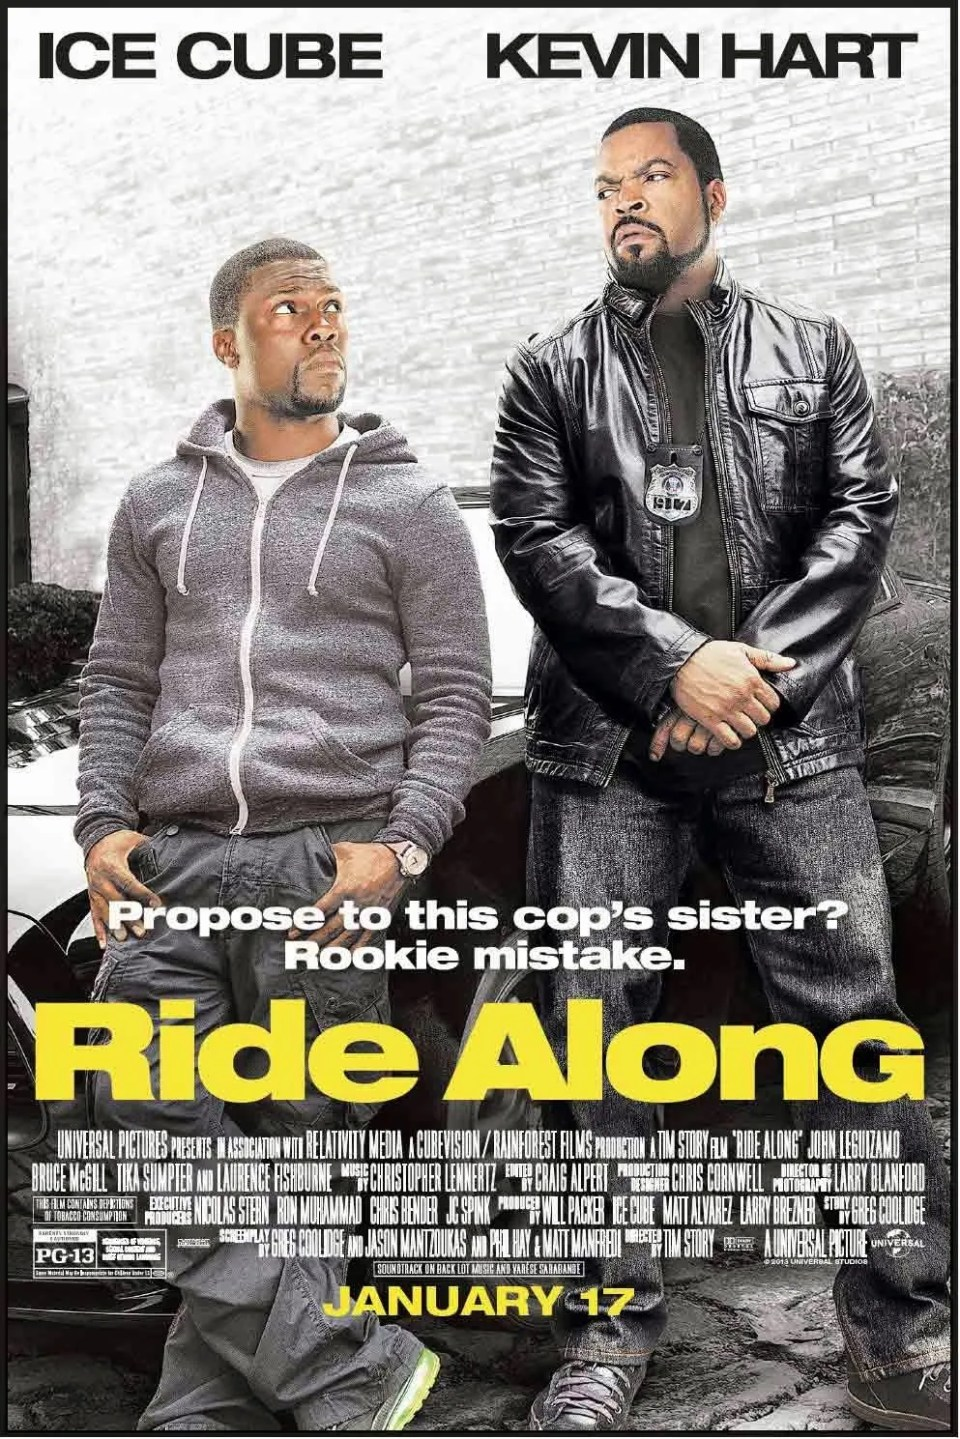 Ride Along (Film) - TV Tropes